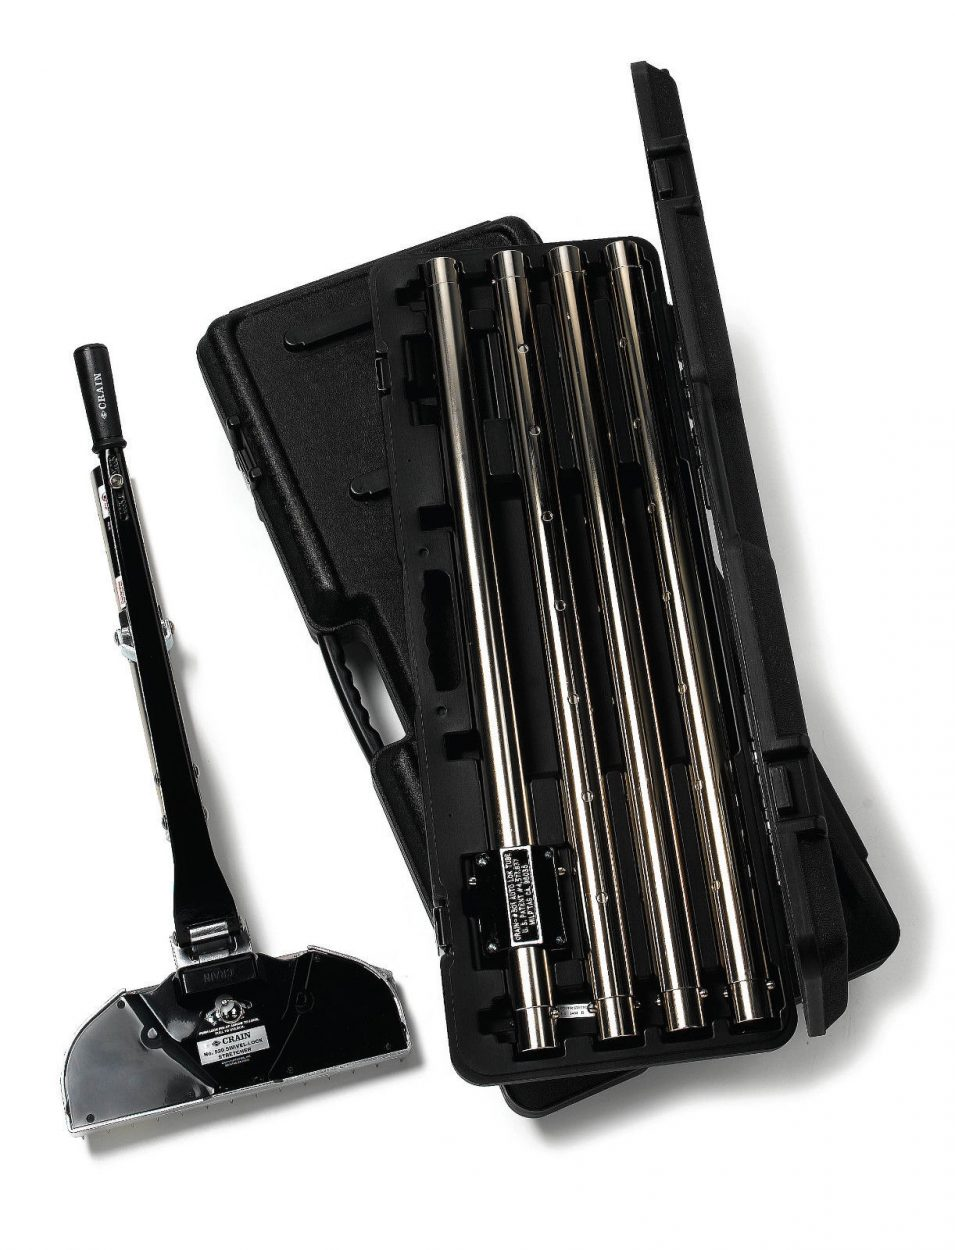 Crain Power Stretcher